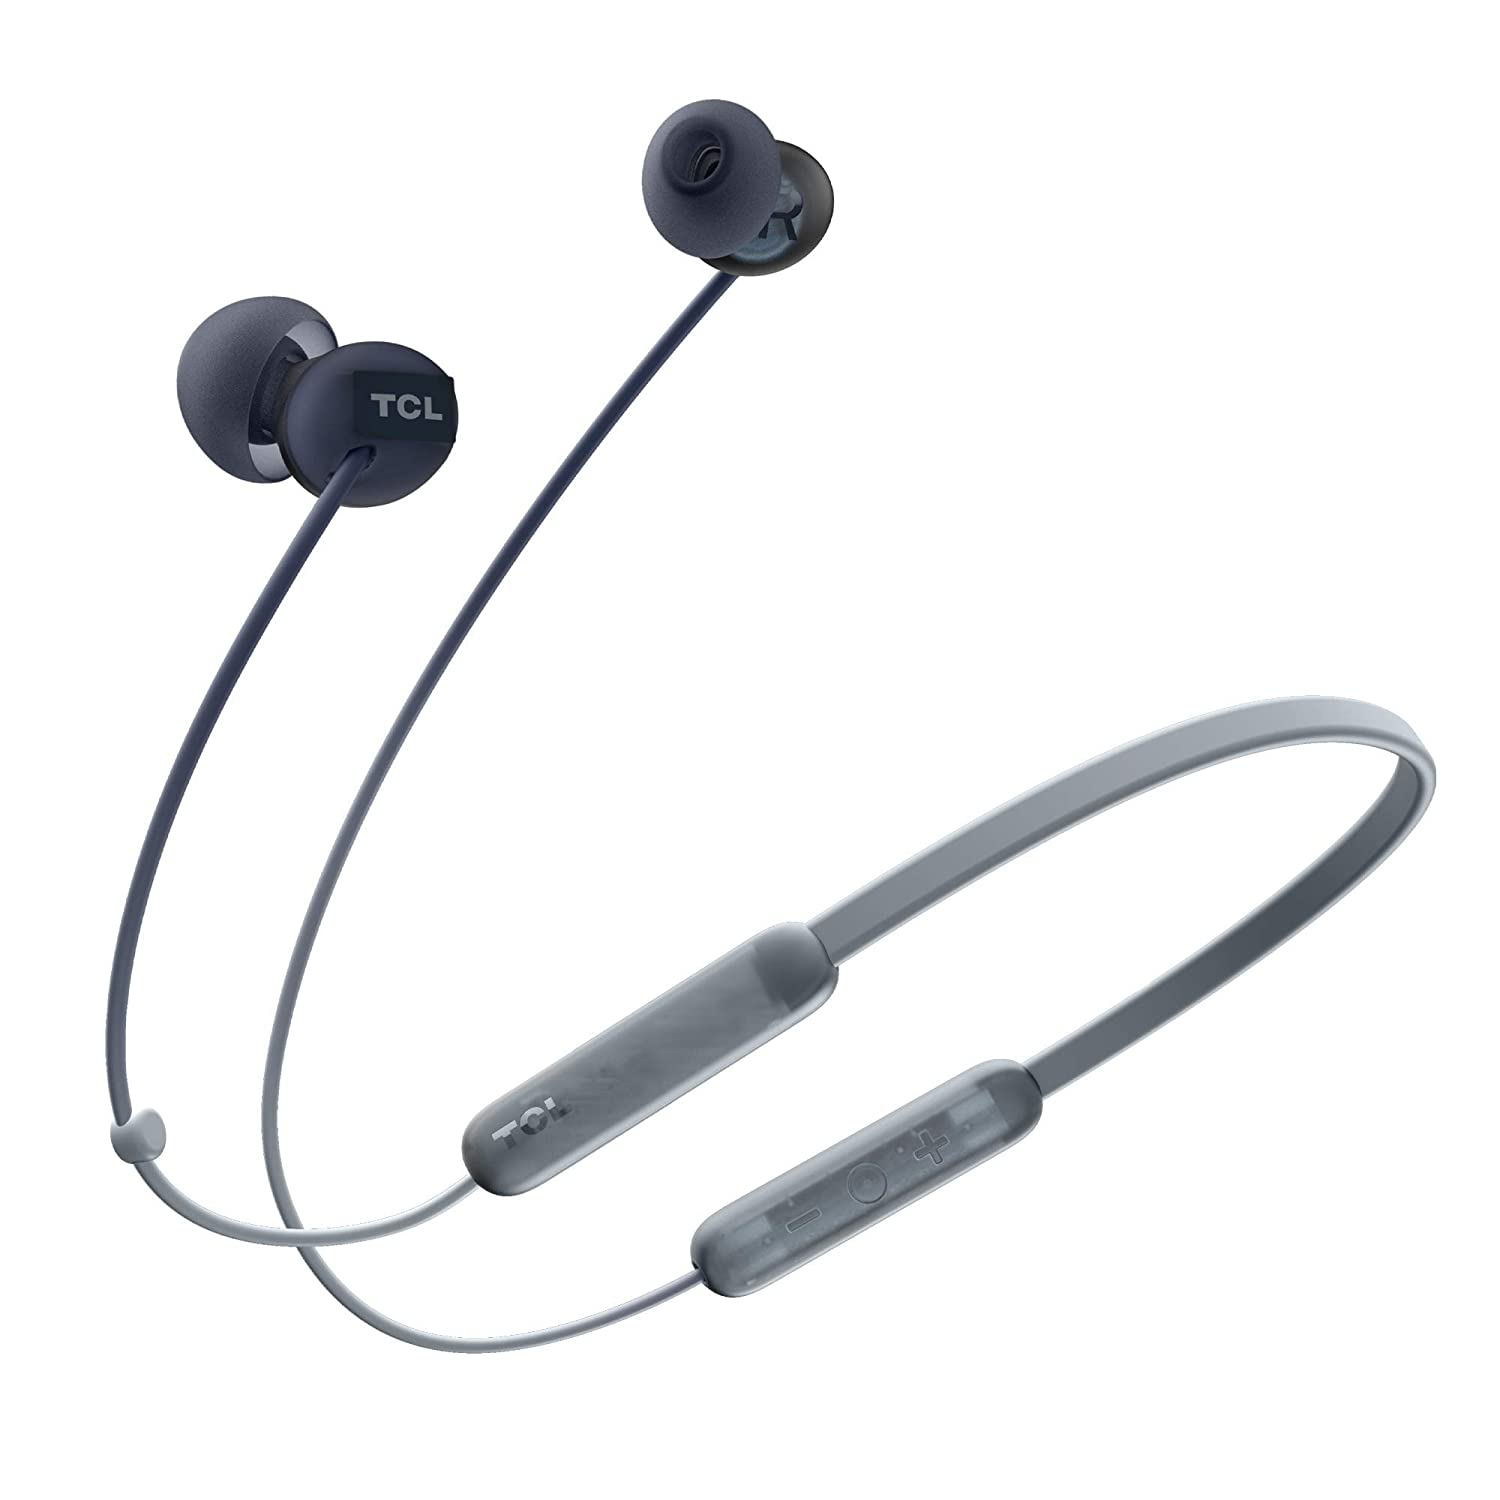 TCL SOCL300BT Wireless Bluetooth in-Ear Earbud Headphones with Noise Isolation and Extra-Long 17hr Playback Battery, Built-in Mic - Phantom Black